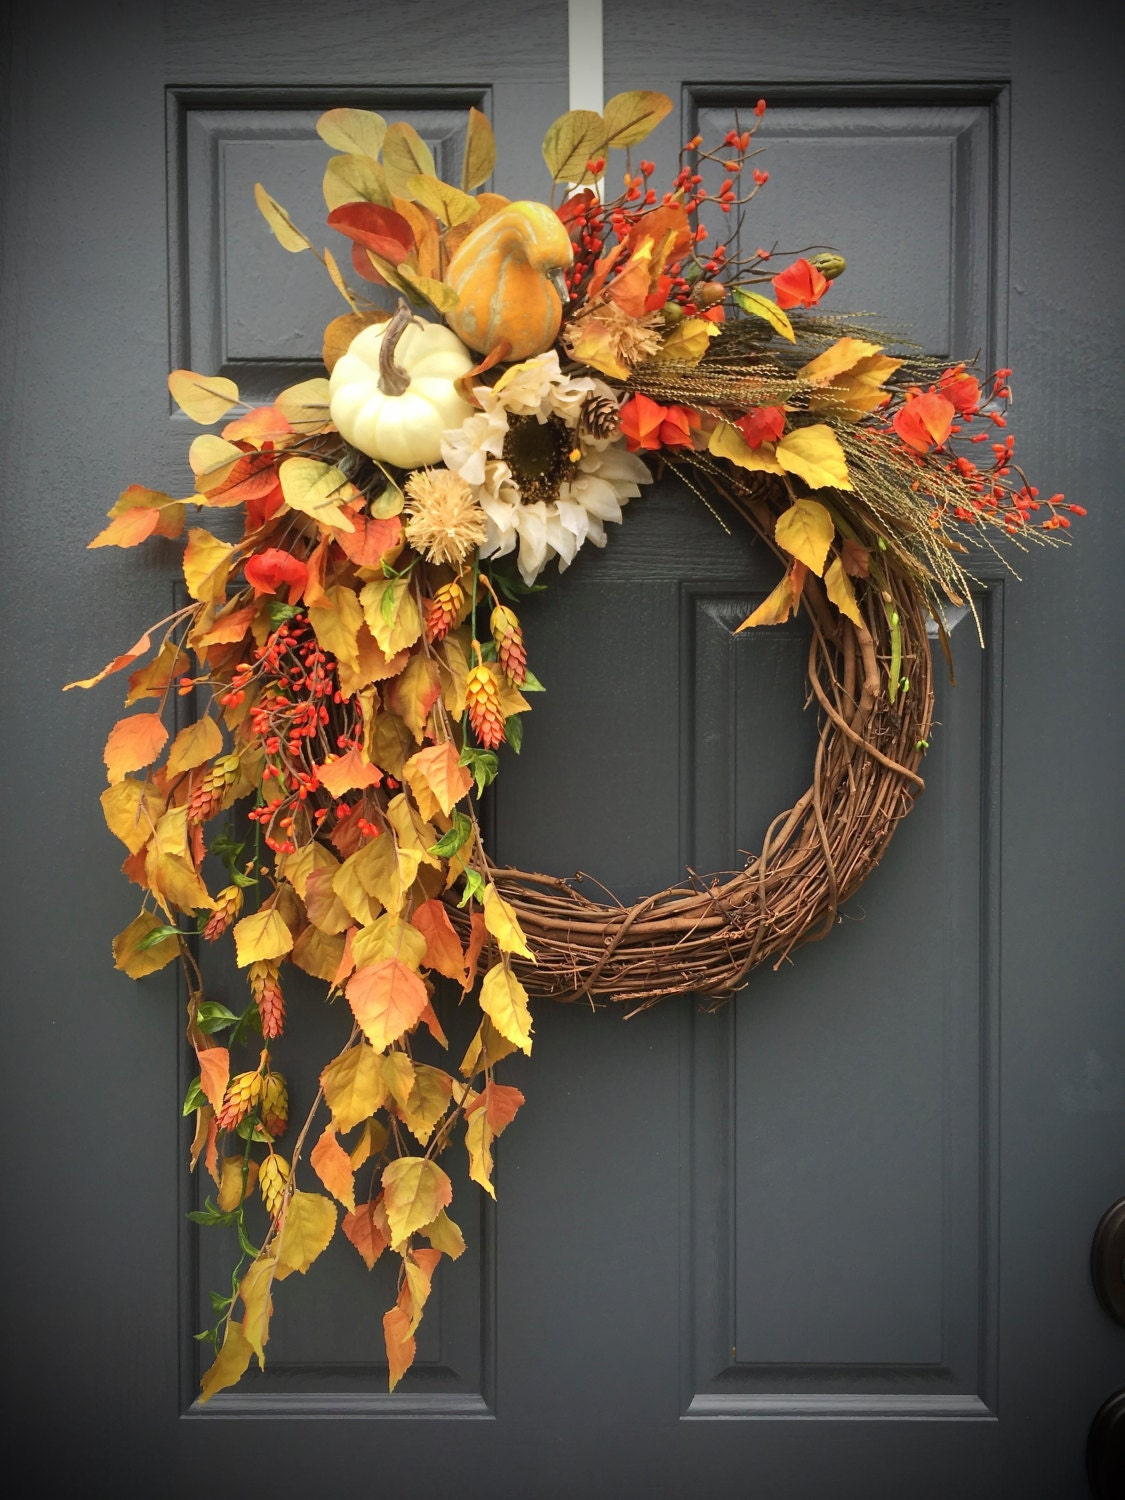 Fall Wreaths Fall Door Wreaths Wreaths For Fall Fall Decor: fall autumn door wreaths